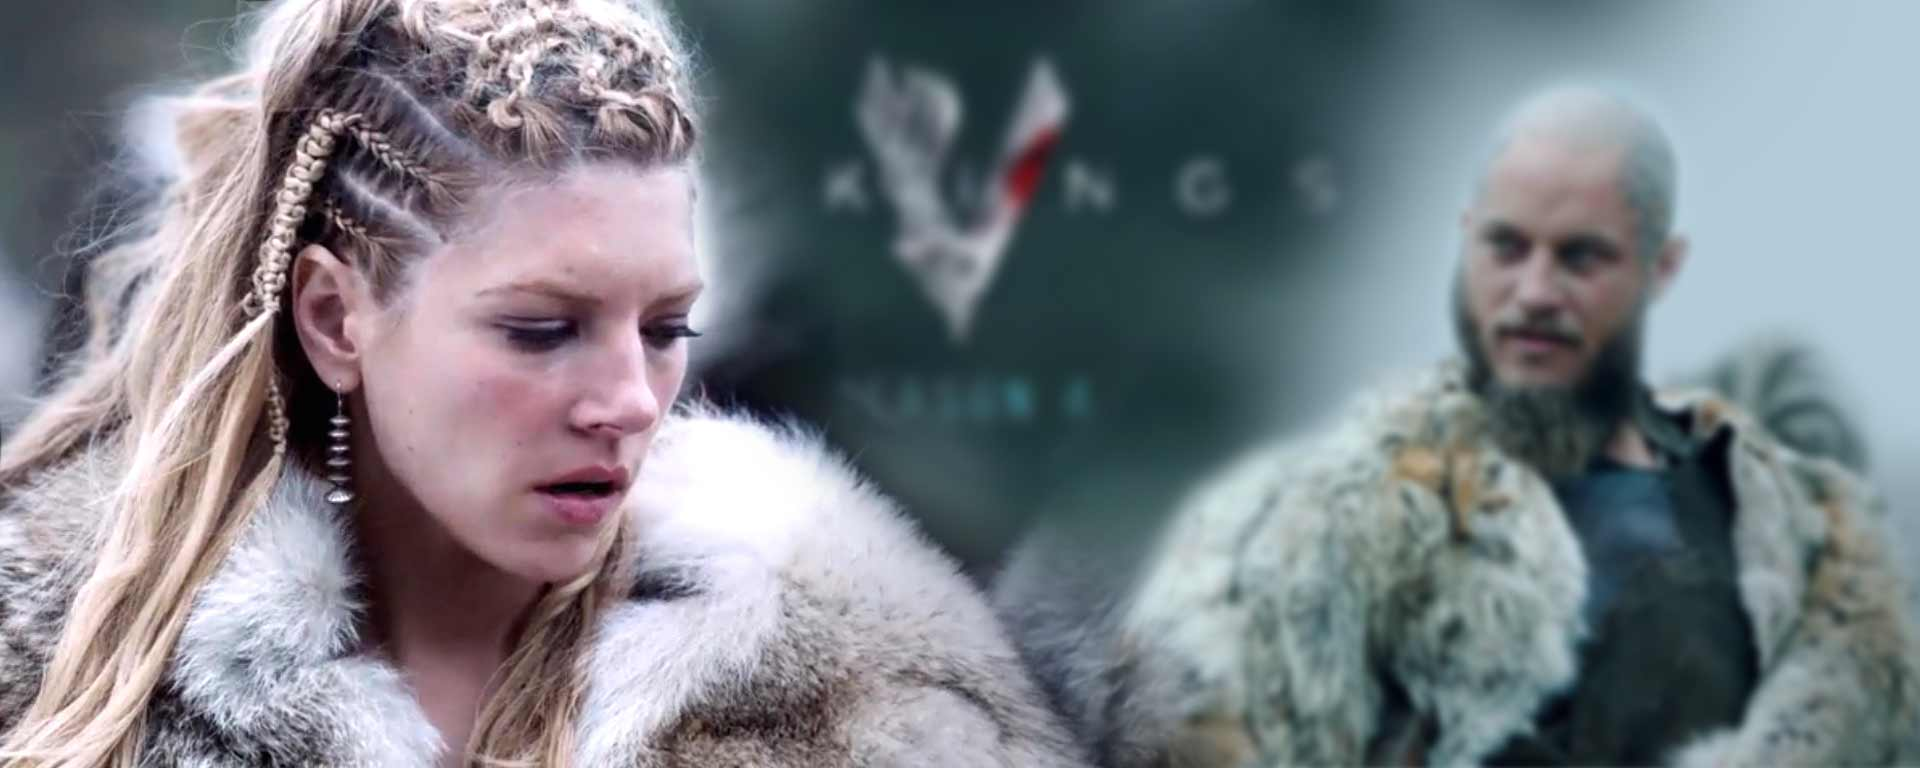 Vikings Season 4 Hairstyles